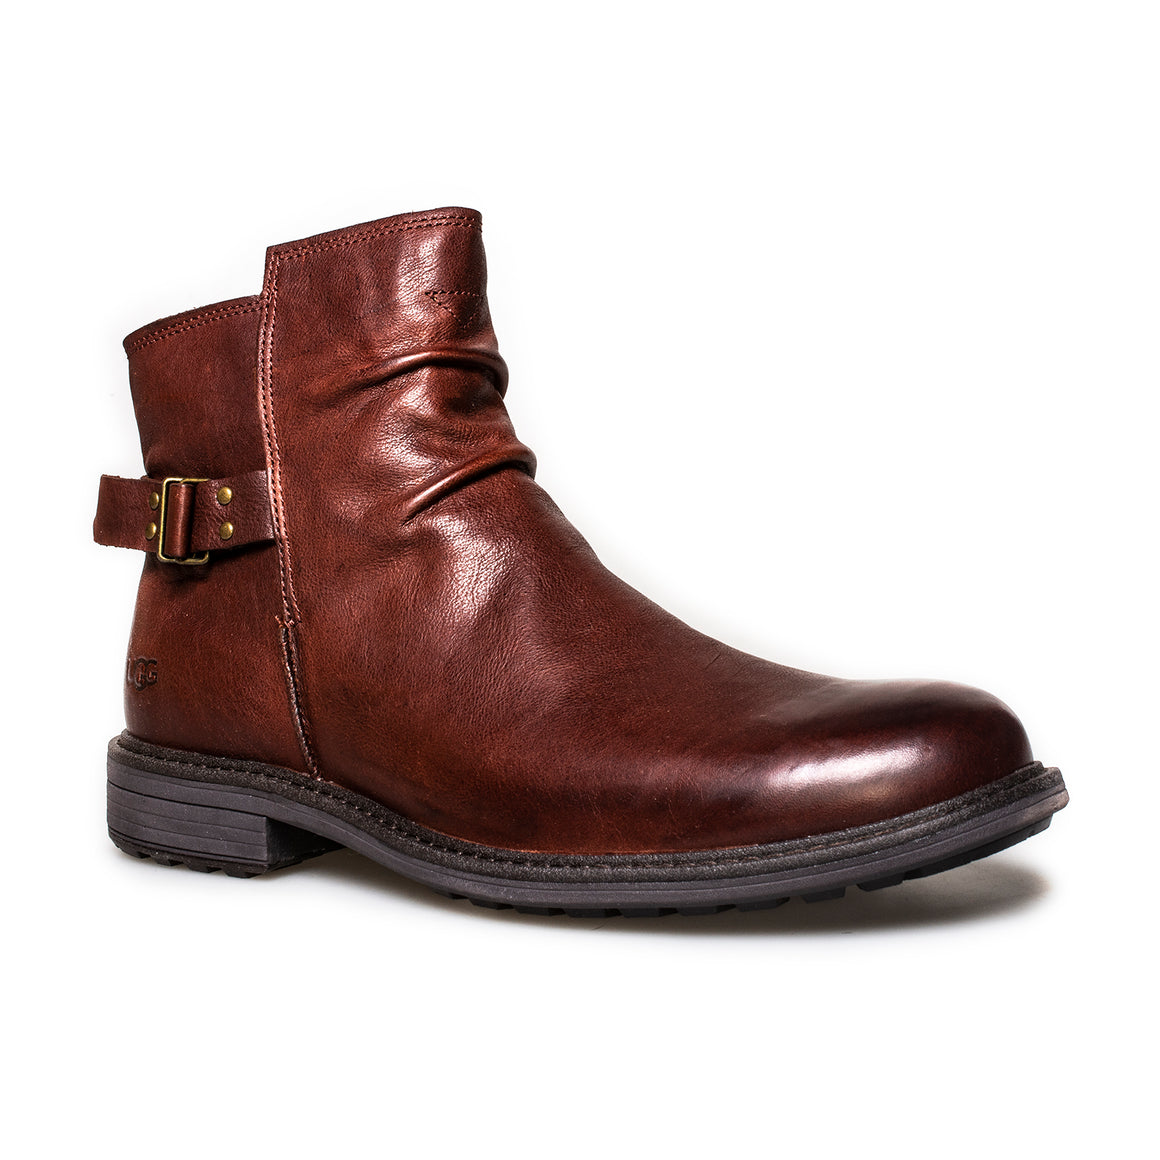 UGG Morrison Pull On Cordovan Boots - Men's